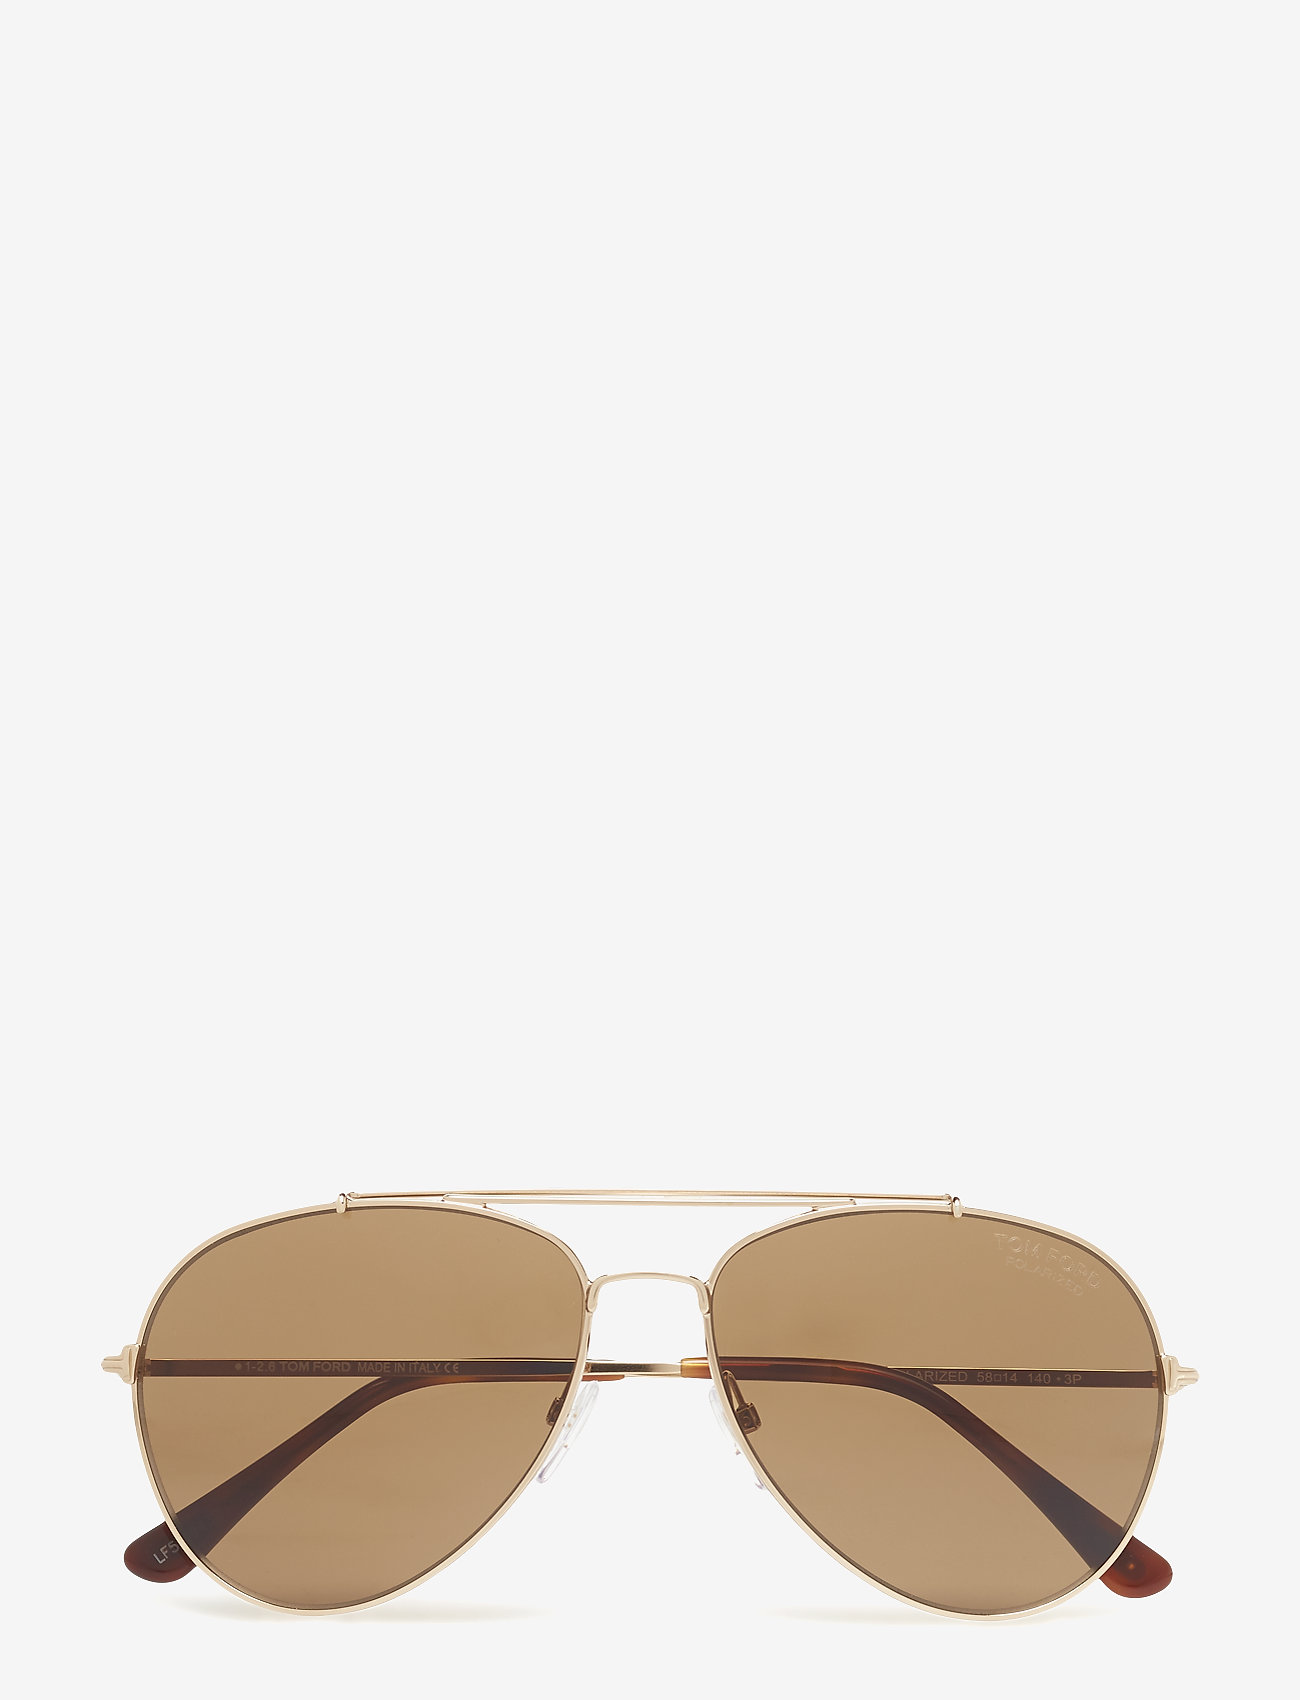 Tom Ford Sunglasses - Tom Ford Indiana - pilot - 28h shiny rose gold / brown polarized - 0